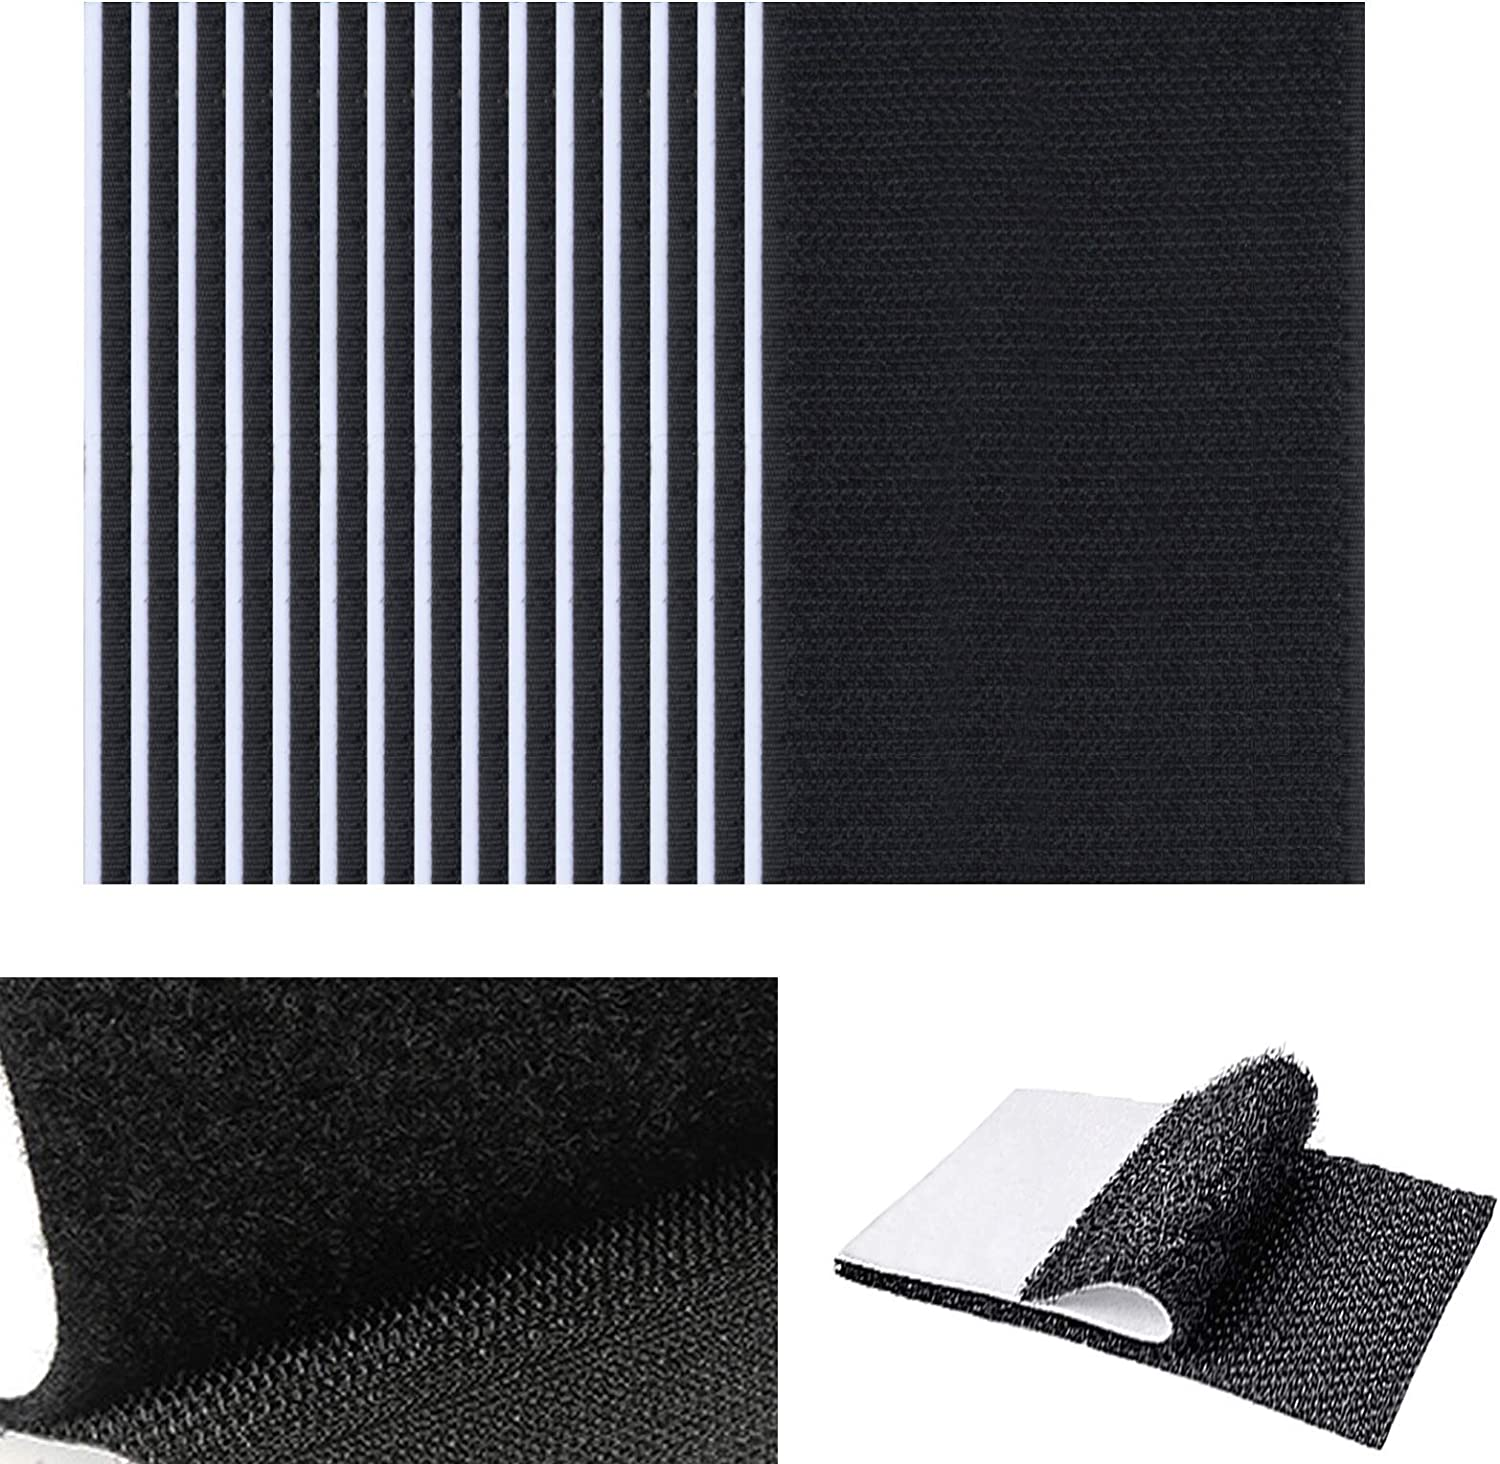 32 Pcs Couch Cushions, Keep Couch Cushions from Sliding, Couch Non Slip Pads Hook and Loop Tapes Strips, Couch Cushion Non Slip Pads Heavy Duty Strips with Adhesive, 16 Pairs, 6x4 Inch